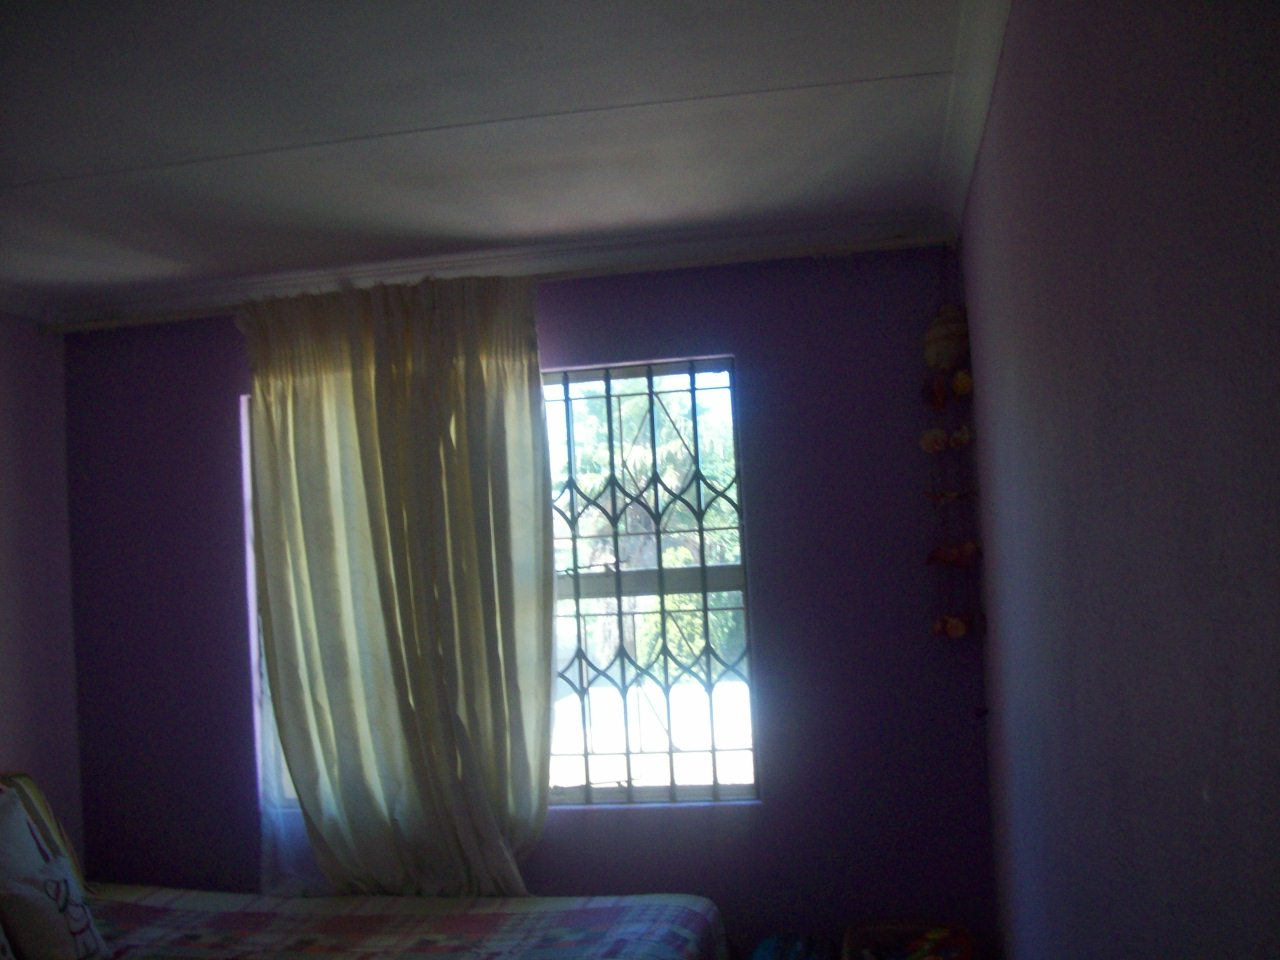 3 Bedroom Townhouse for sale in Bassonia ENT0071278 : photo#46